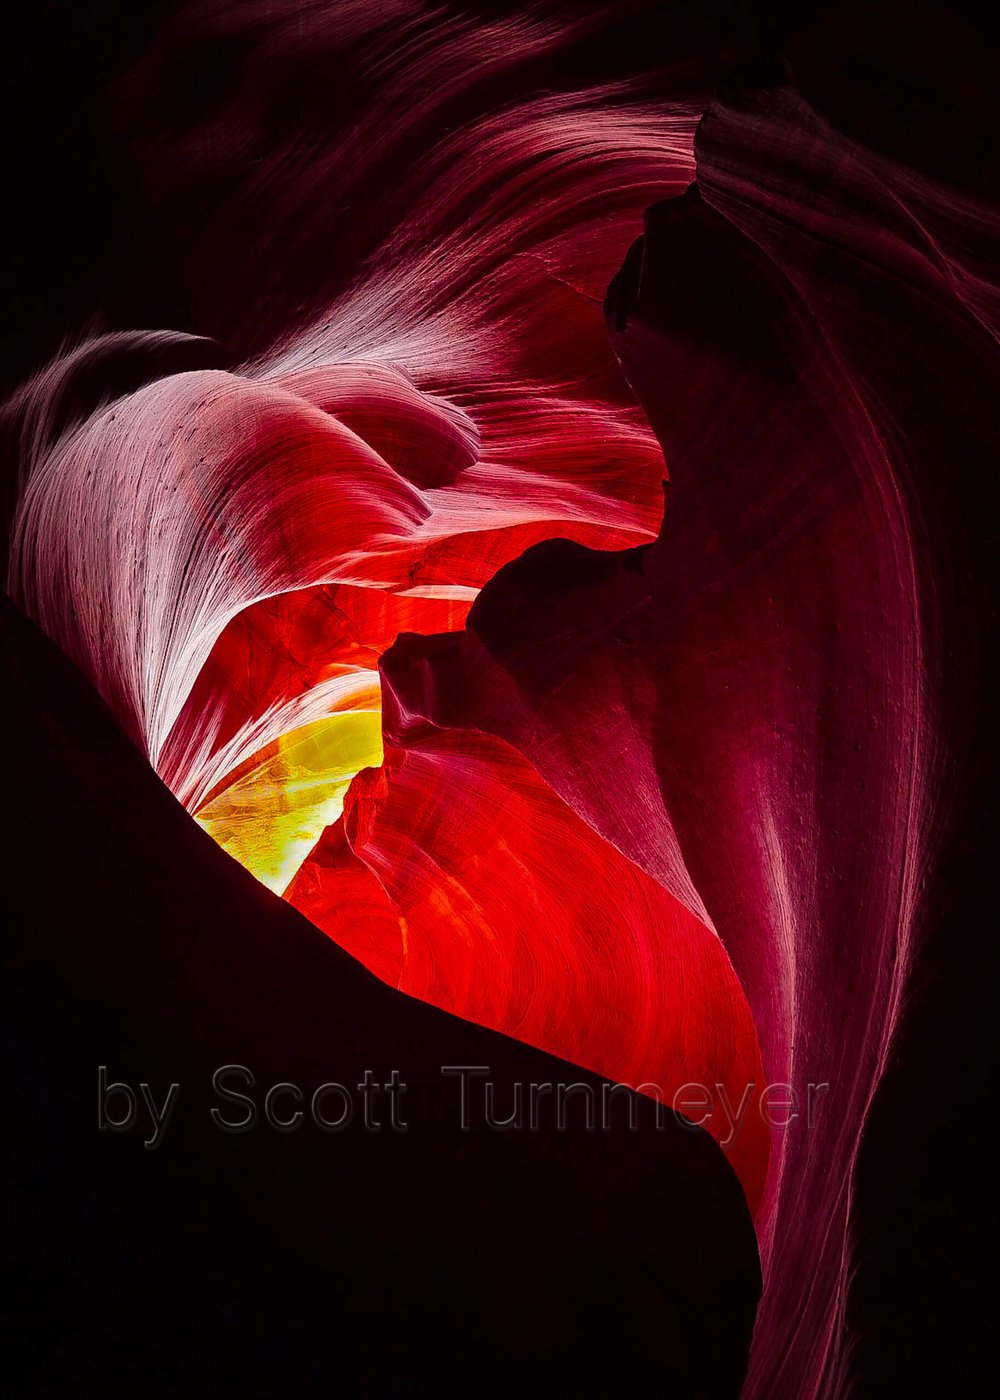 The Heart by Scott Turnmeyer